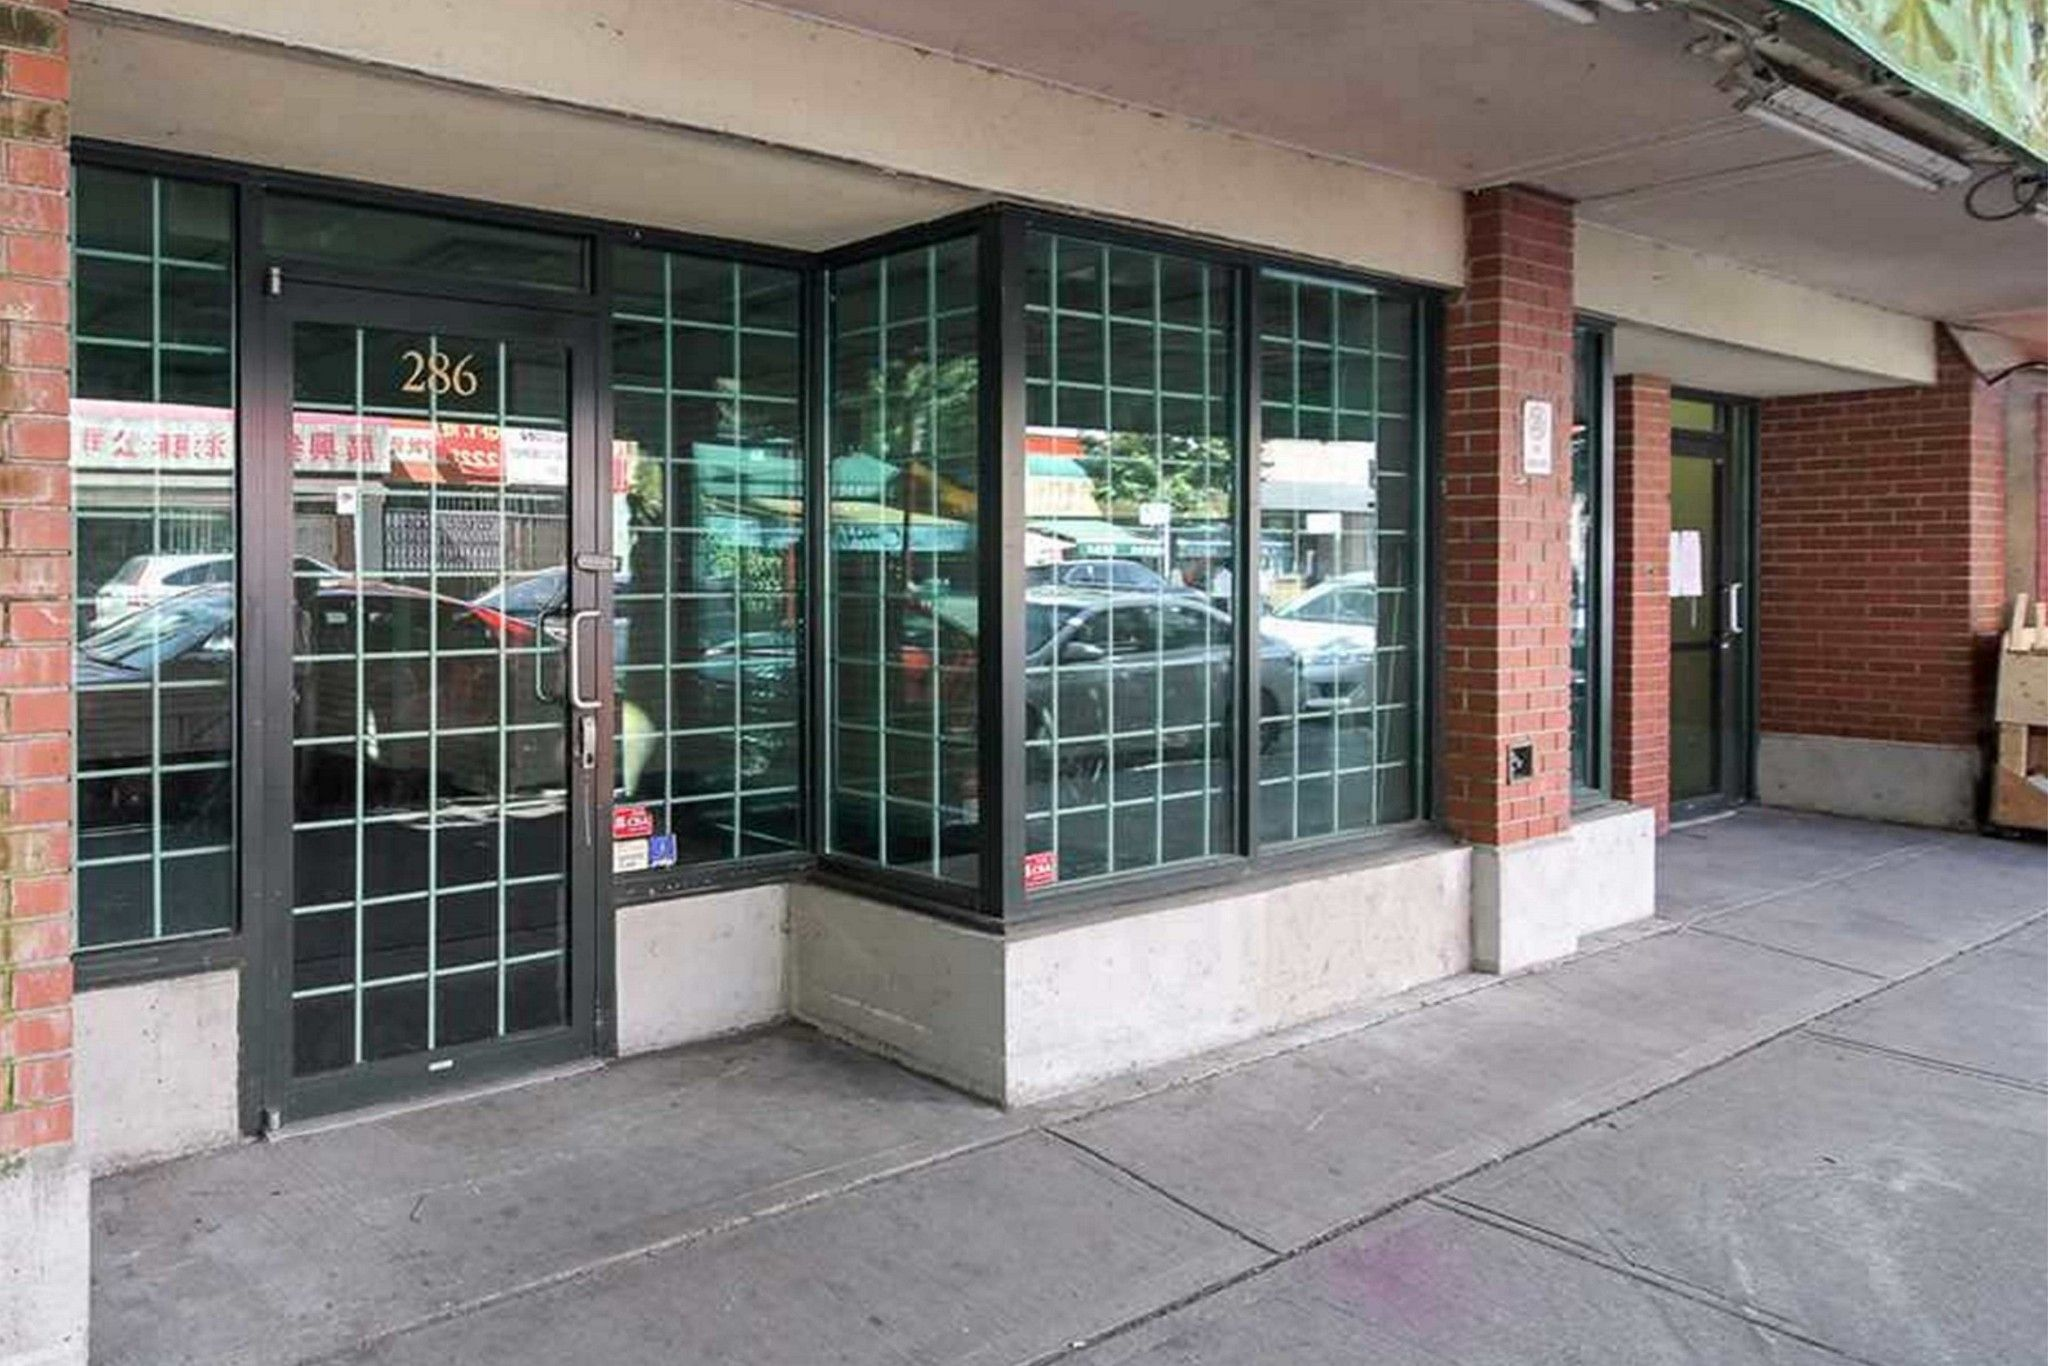 Photo 1: Photos: 286 E GEORGIA STREET in VANCOUVER: Strathcona Retail for sale (Vancouver East)  : MLS®# C8030585